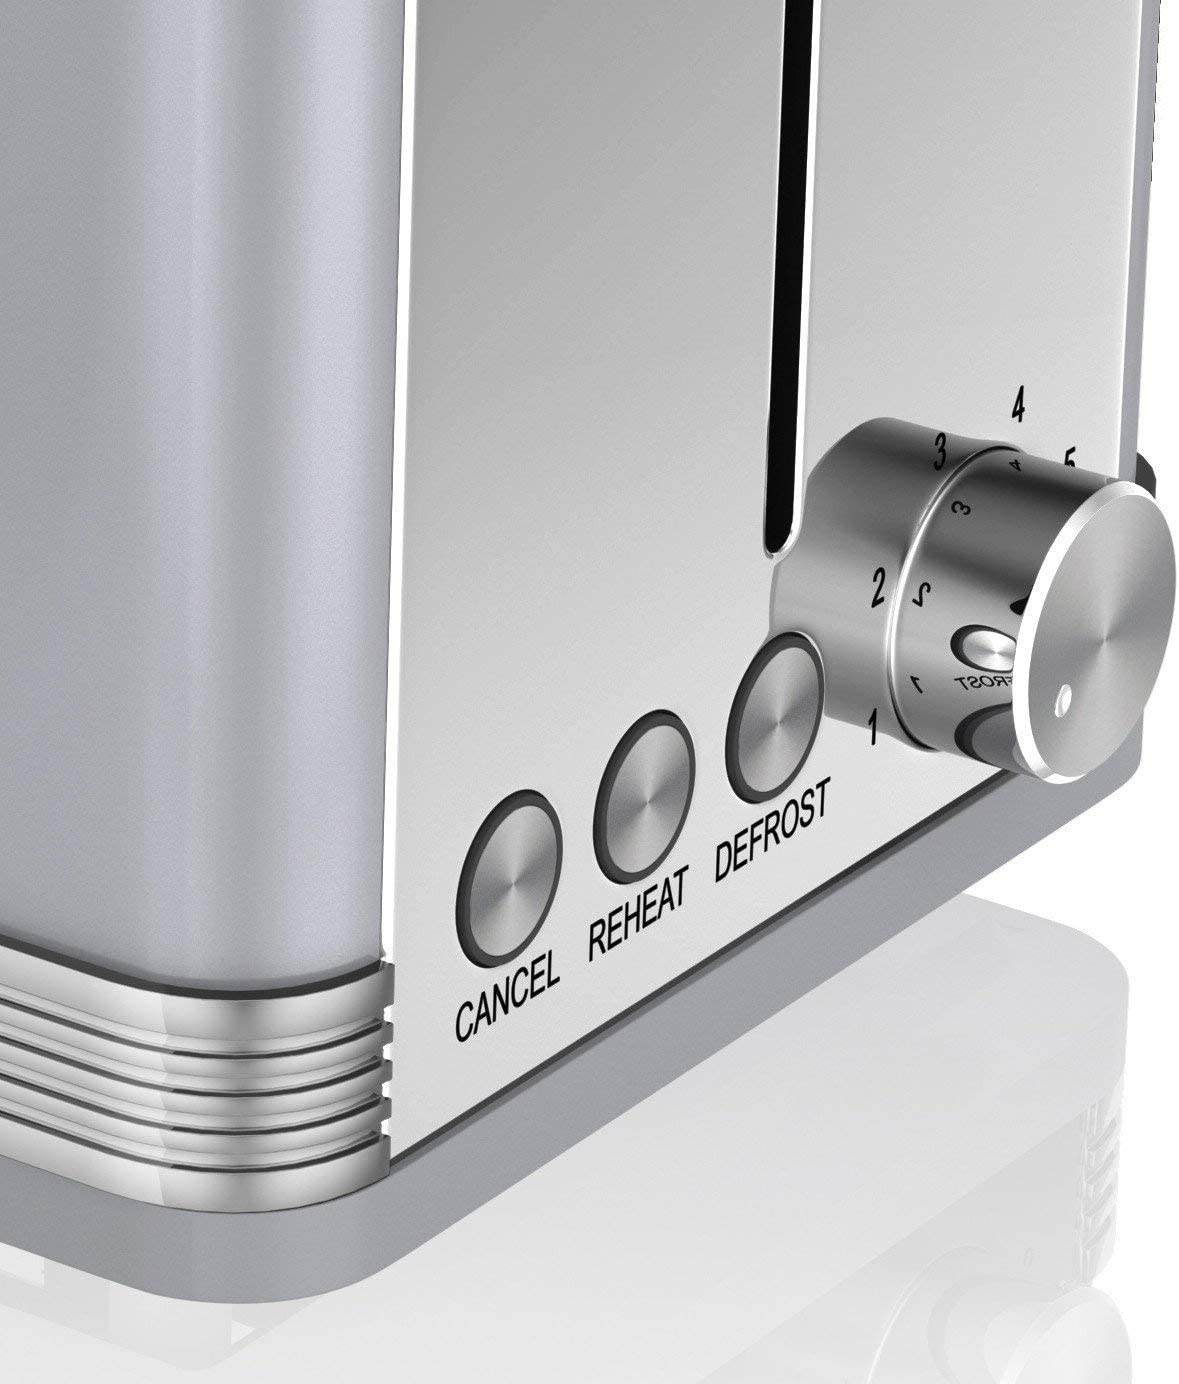 Swan, STP7040BLN, Retro 1.5L Jug Kettle & 2 Slice Toaster, Stainless Steel Body, 3kw, Slide Out Crumb Tray, Auto-Centering, (Blue) Grey